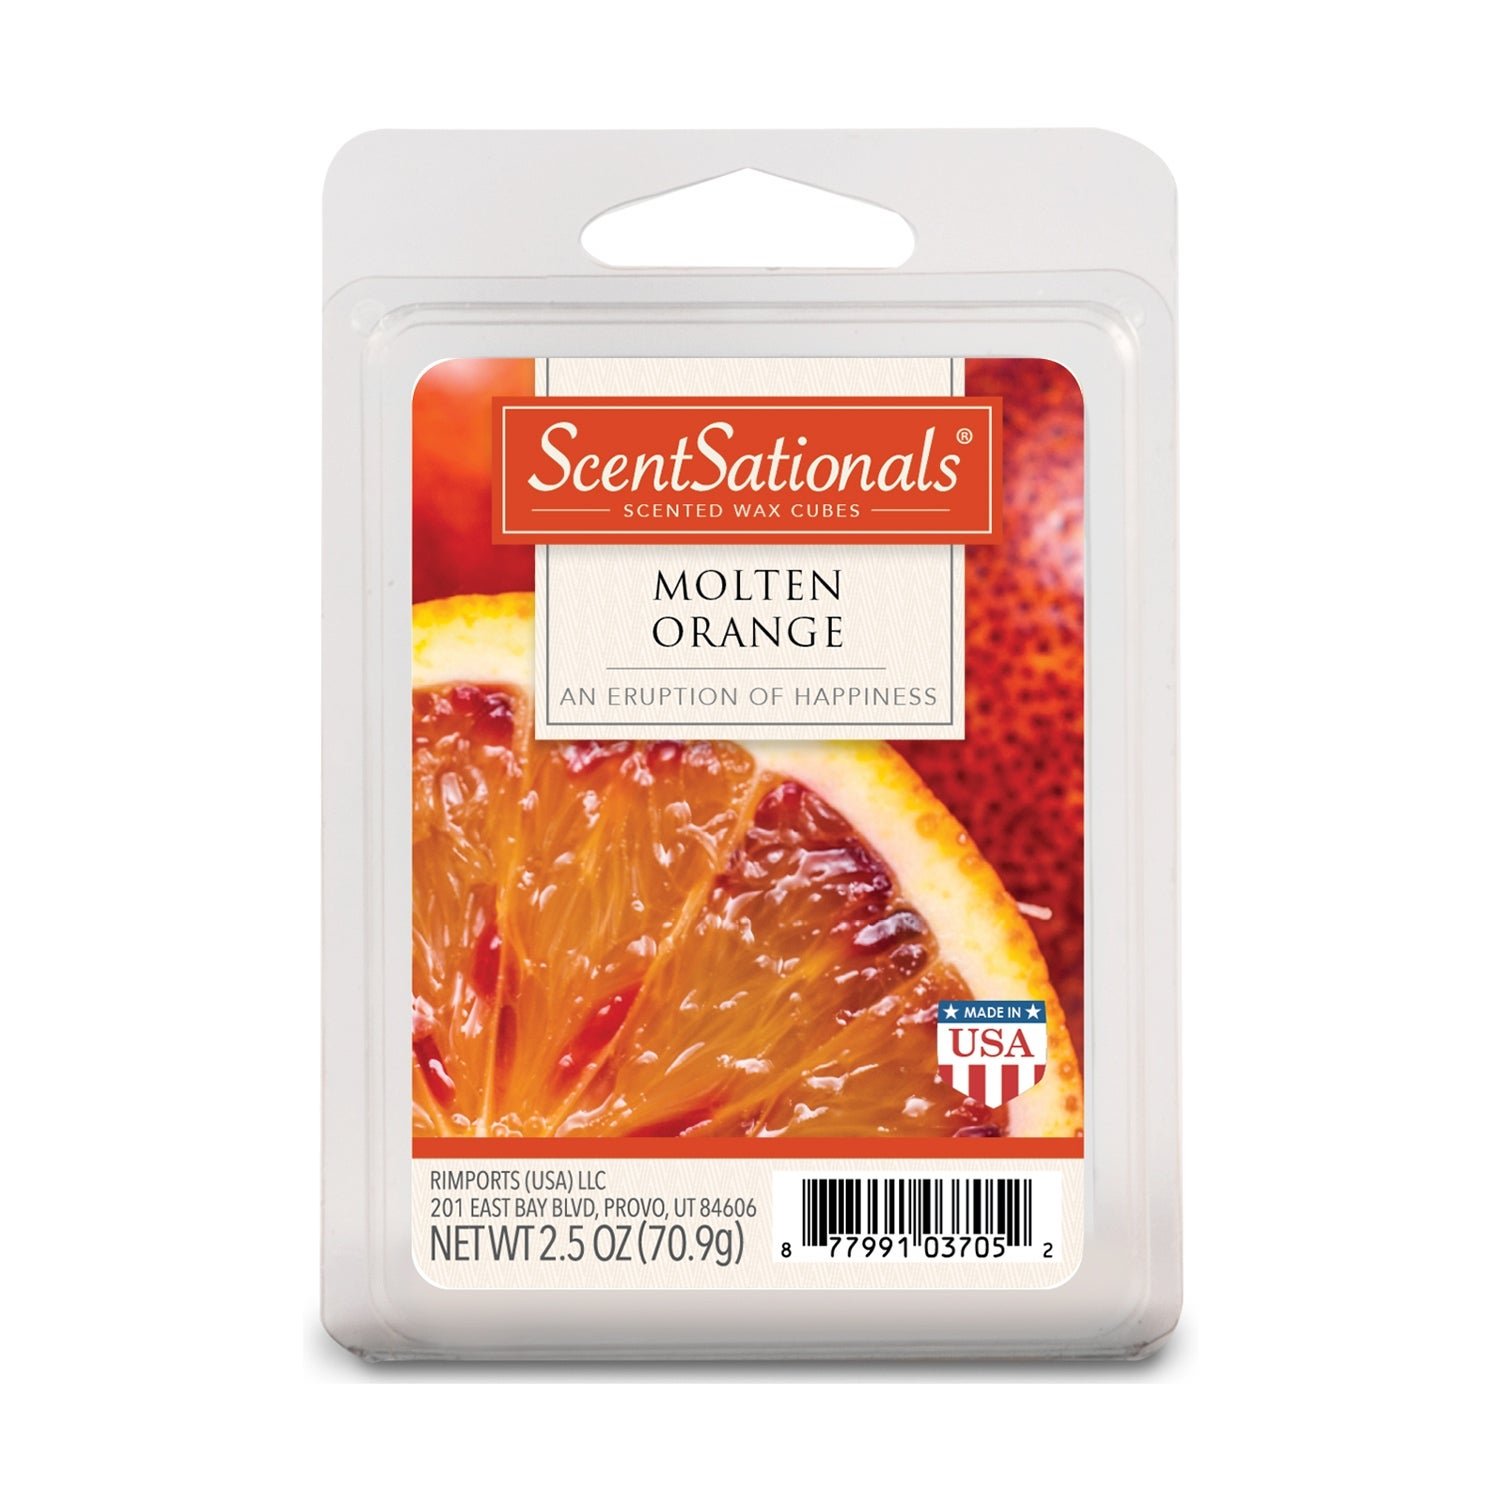 Scentsationals Molten Orange 2 5 Oz Fragrant Wax Melts 6 Scented Wax Cubes 4 Pack Overstock 31141460